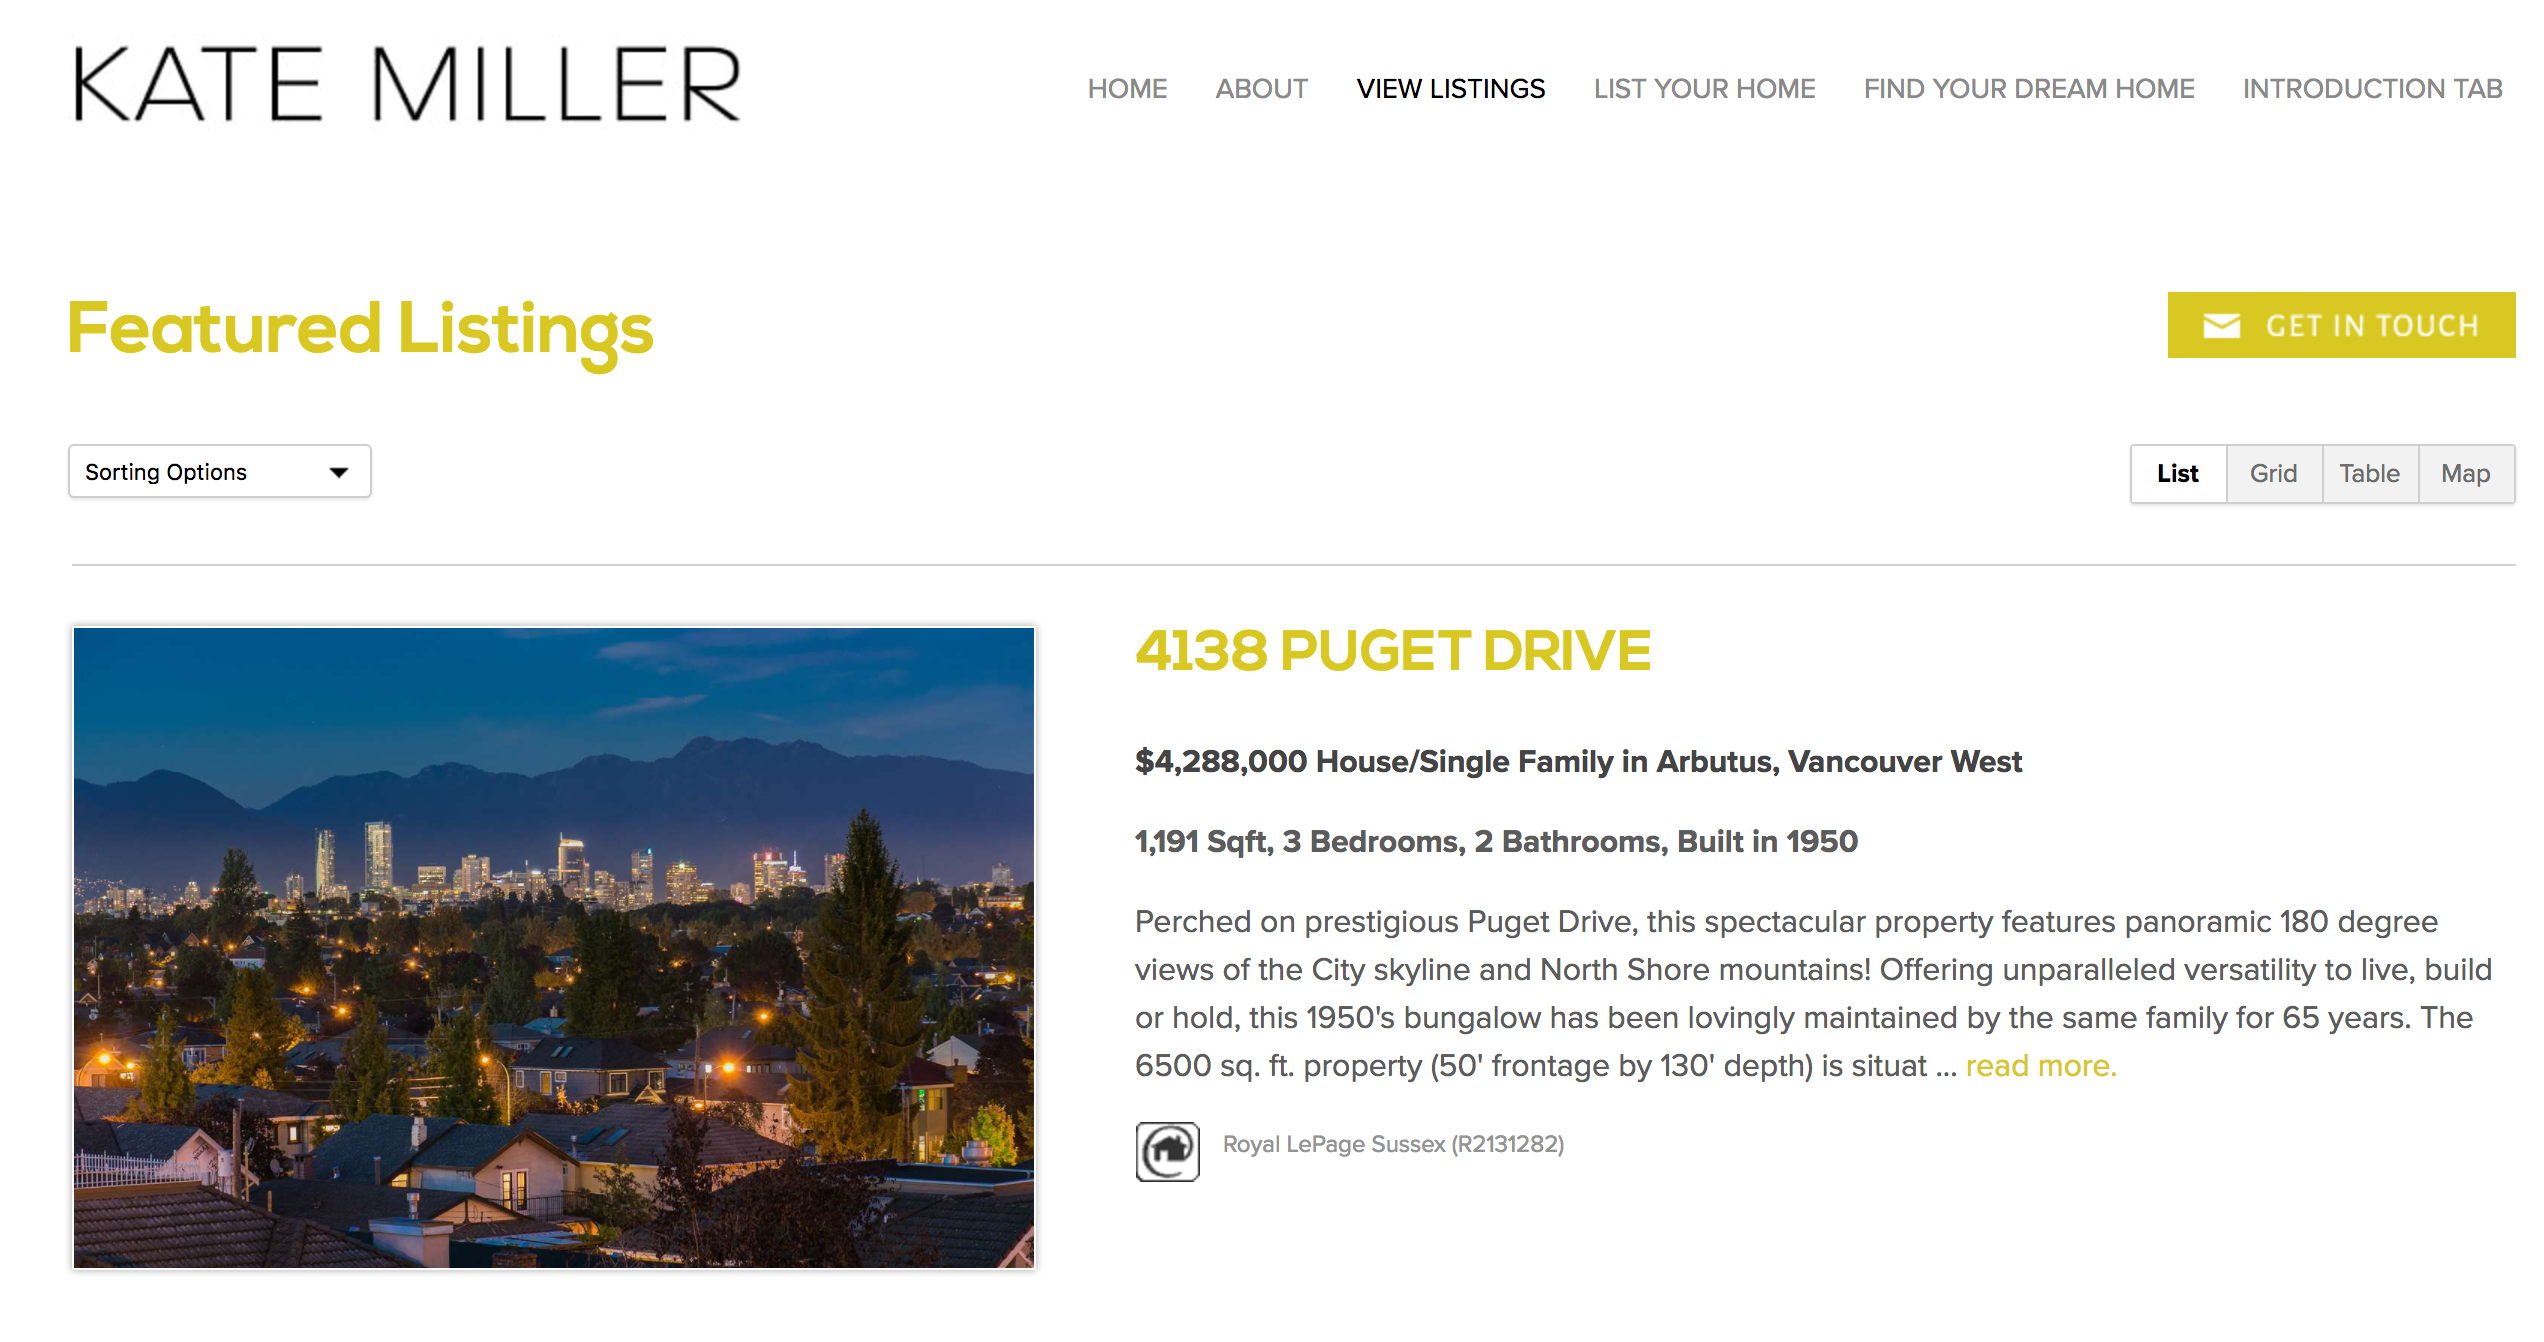 Kate Miller's Featured Listings page is updated